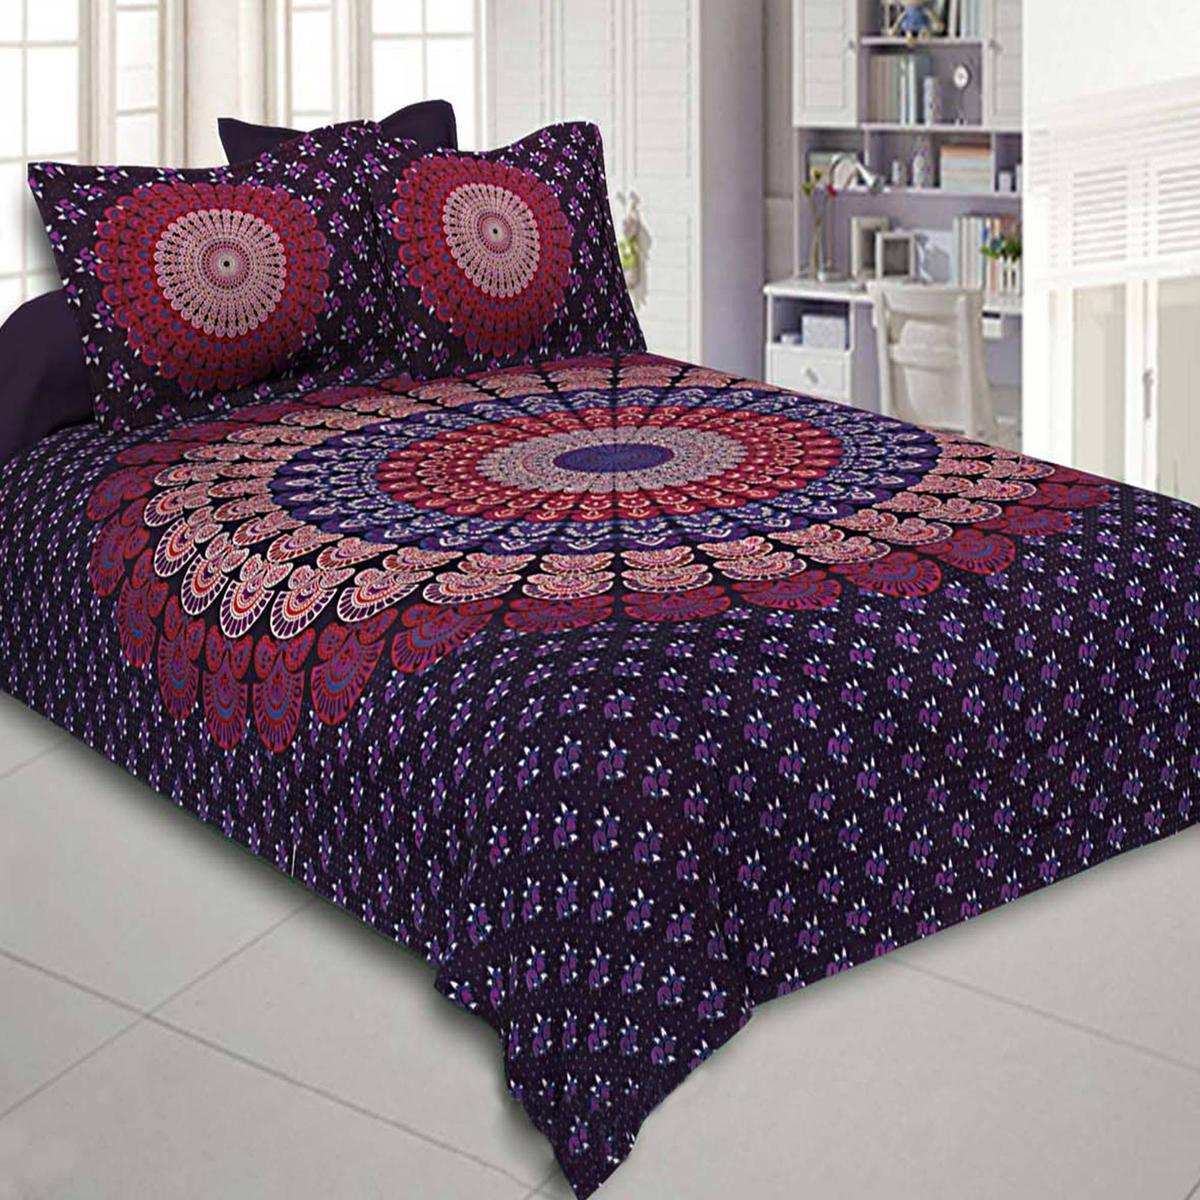 Blissful Dark Purple Colored Mandala Pure Cotton Double Bedsheet Tapestry With 2 Pillow Covers